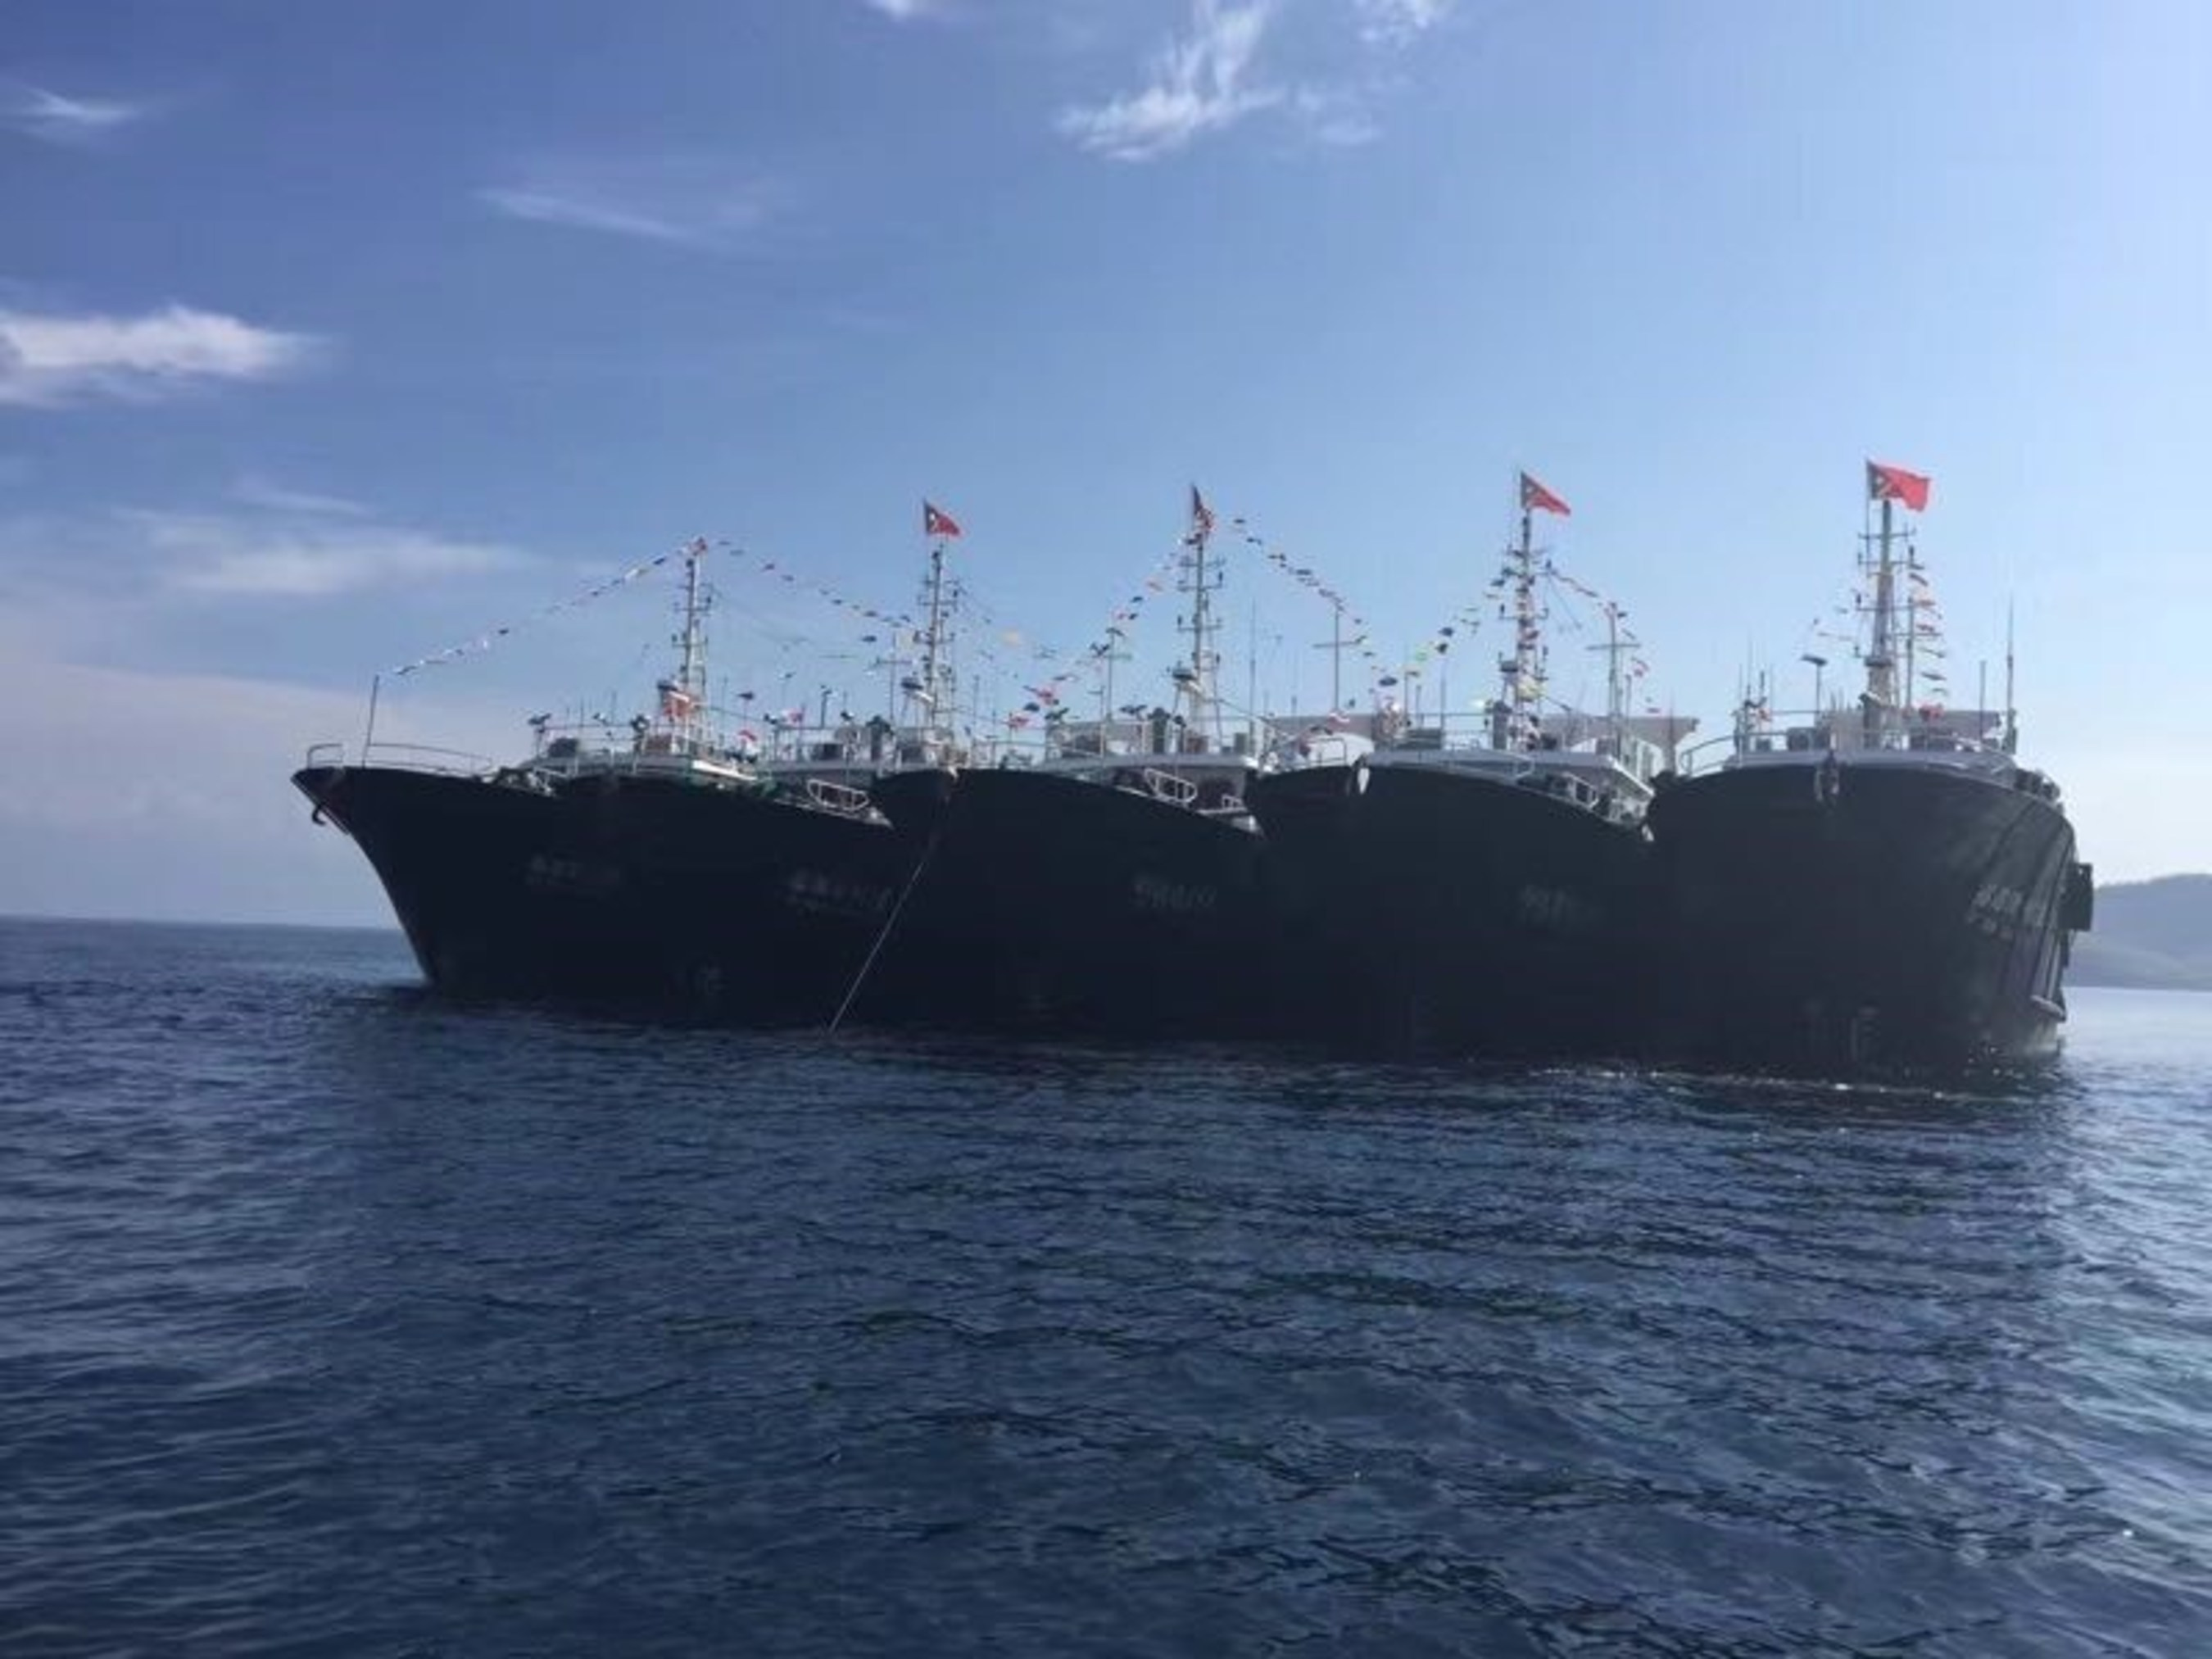 Pingtan's fishing vessels after arriving in Indo-Pacific waters